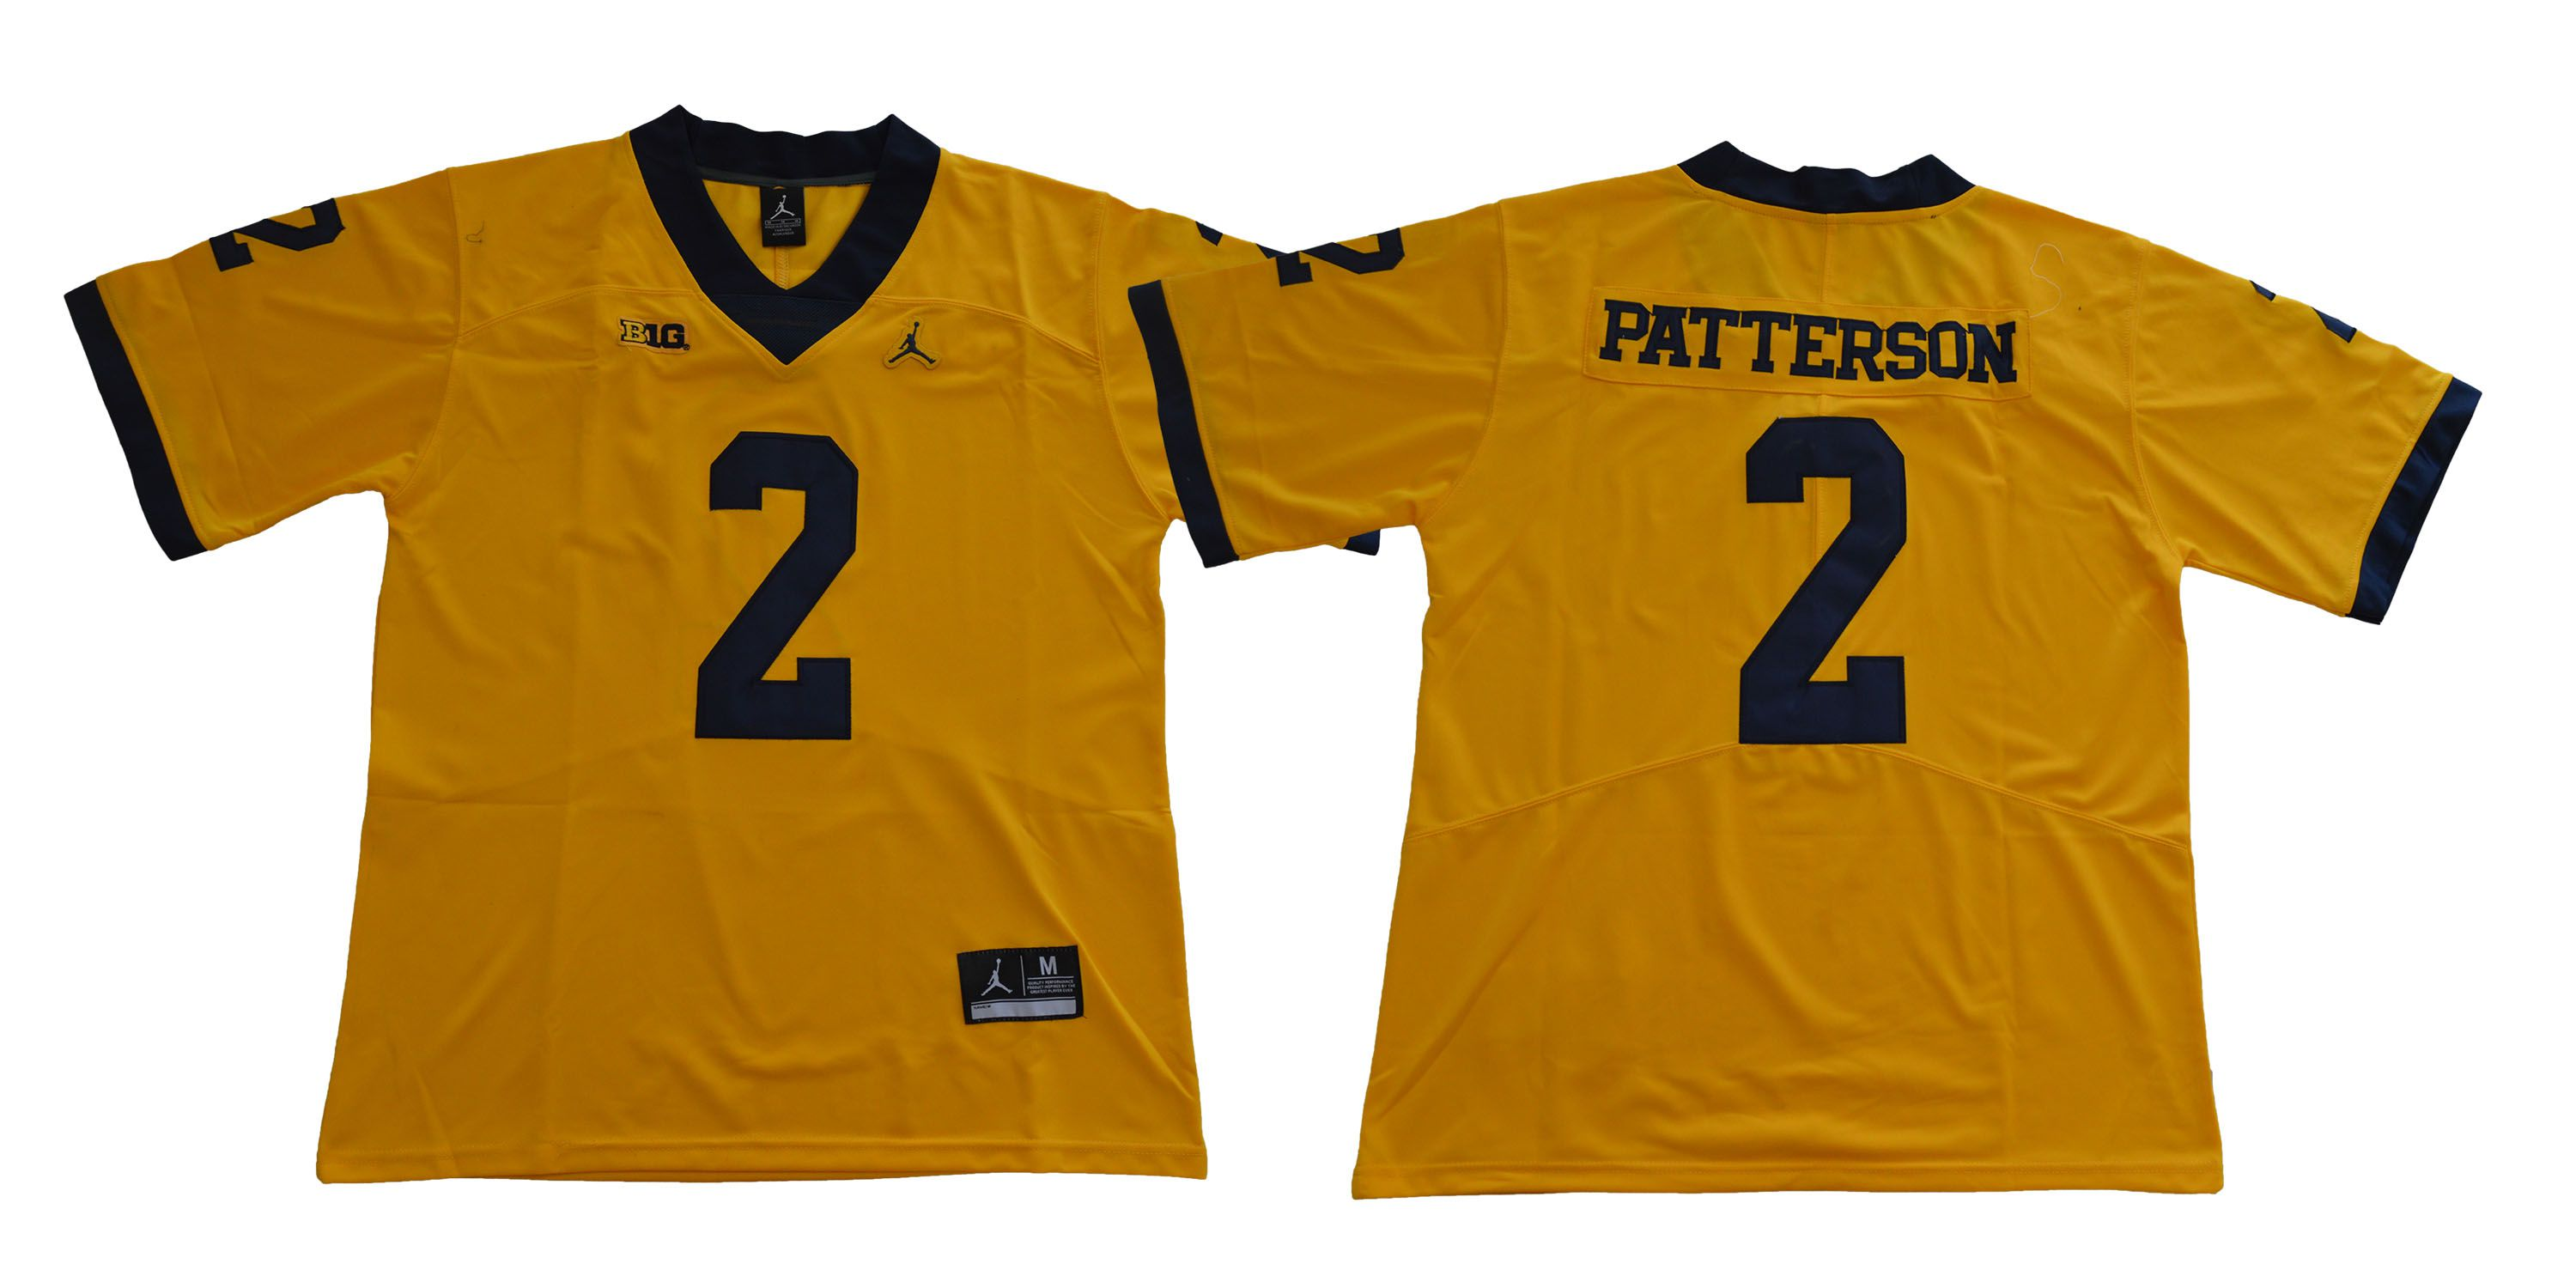 Men Michigan Wolverines 2 Patterson Yellow NCAA Jerseys